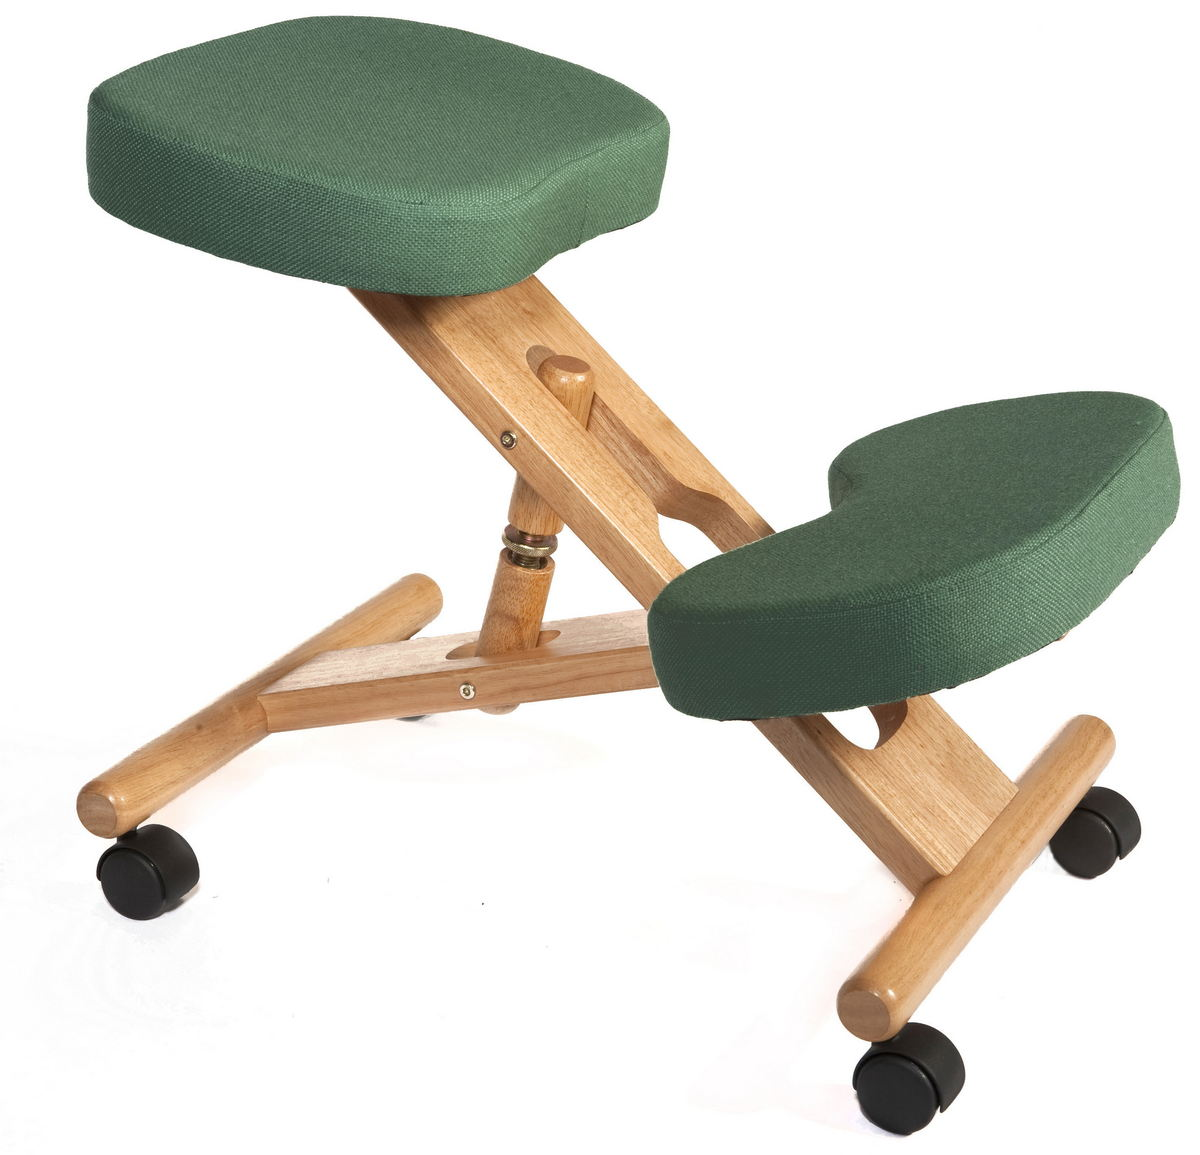 Kneeling Chairs Uk No 1 Kneeling Chair For Sale Online